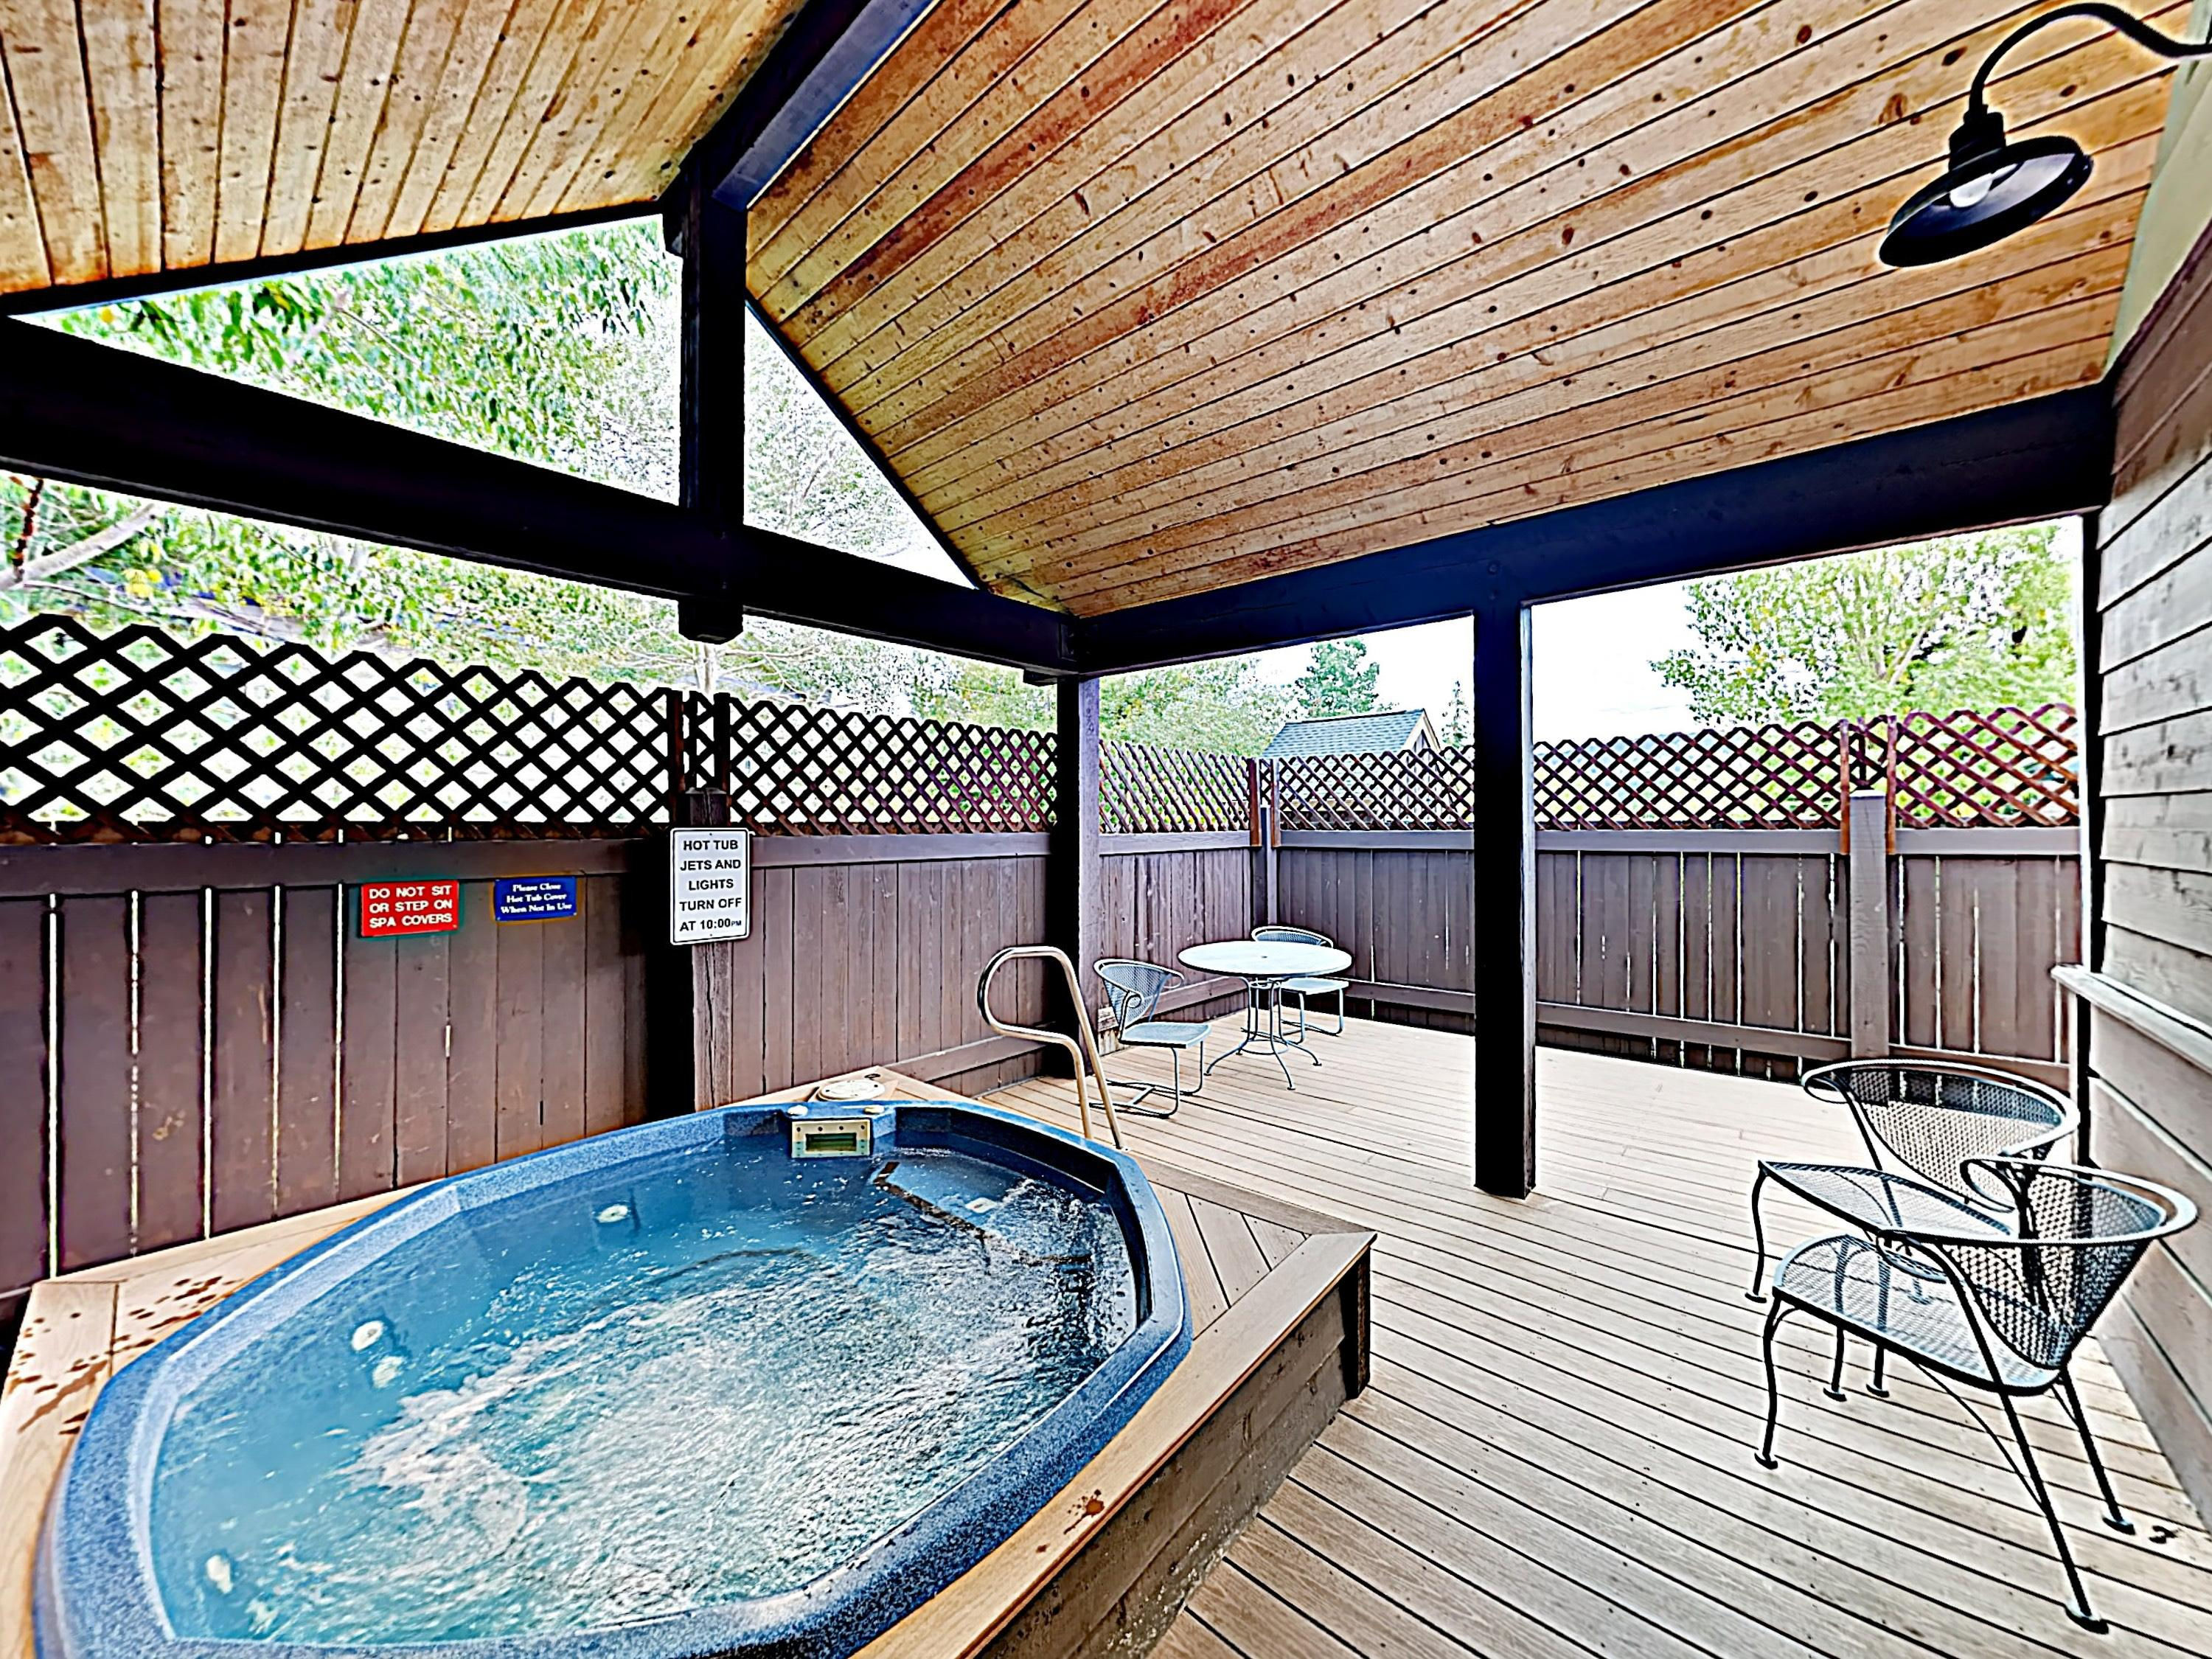 Take a relaxing soak in the shared hot tub.